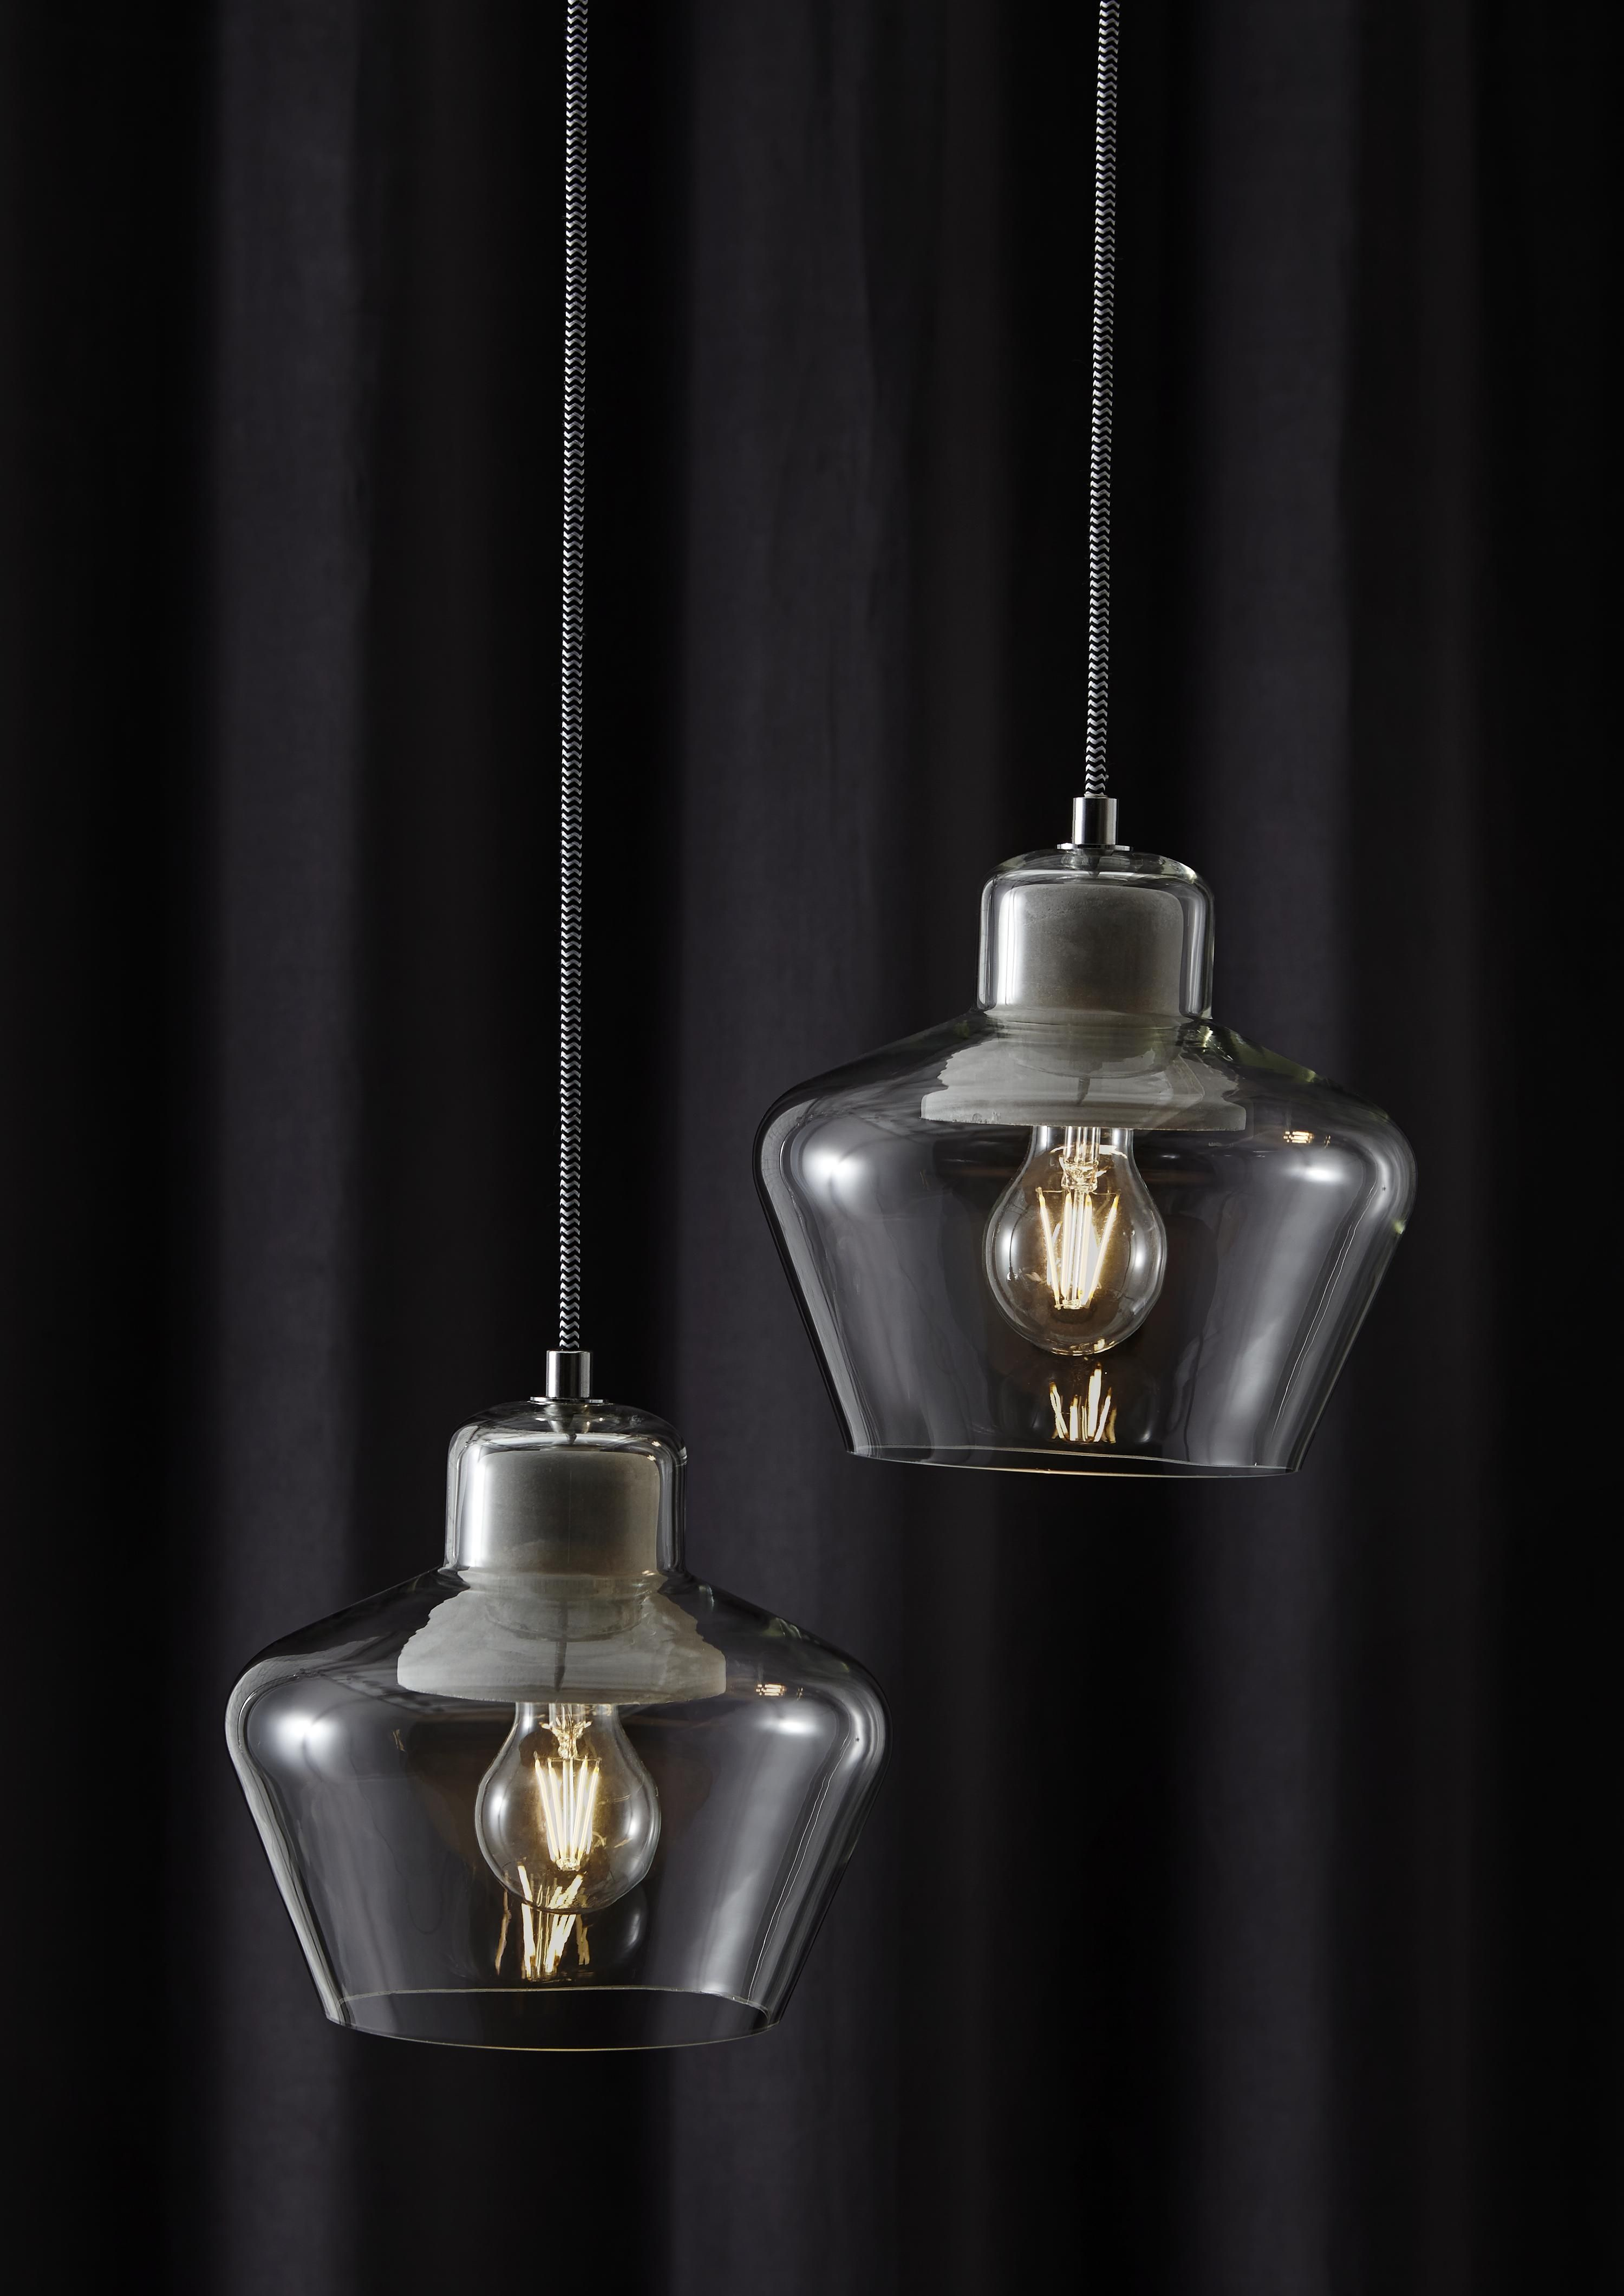 Jidda clear pendant ceiling light large pendant lighting hang two pendant lights at different distances for added impact a great feature over a mozeypictures Images